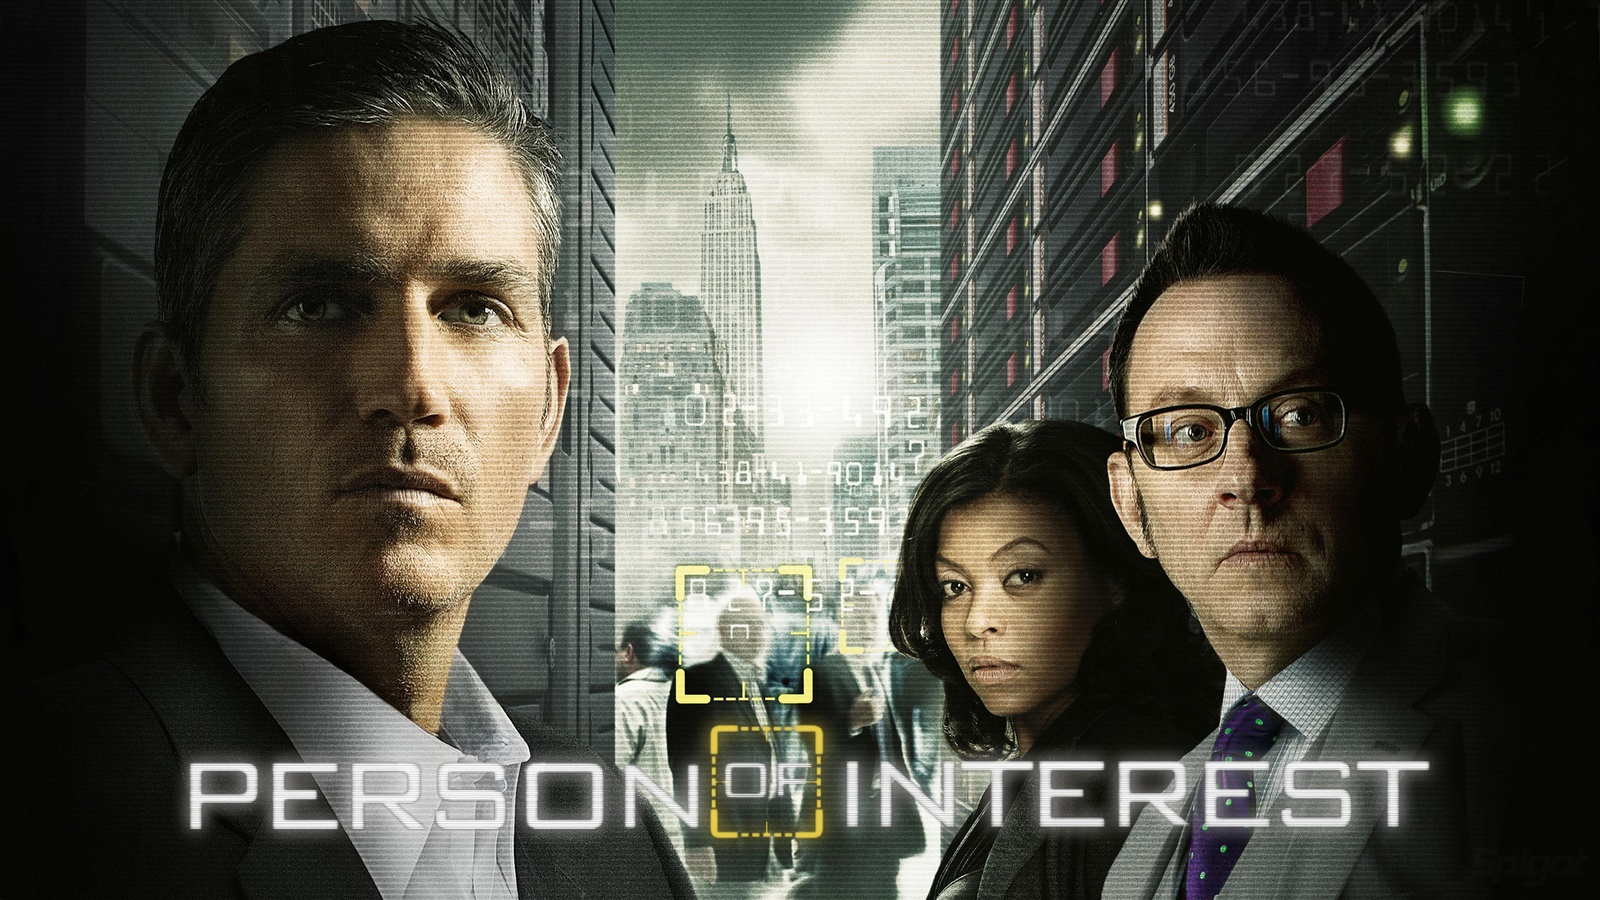 В поле зрения/Person of Interest background